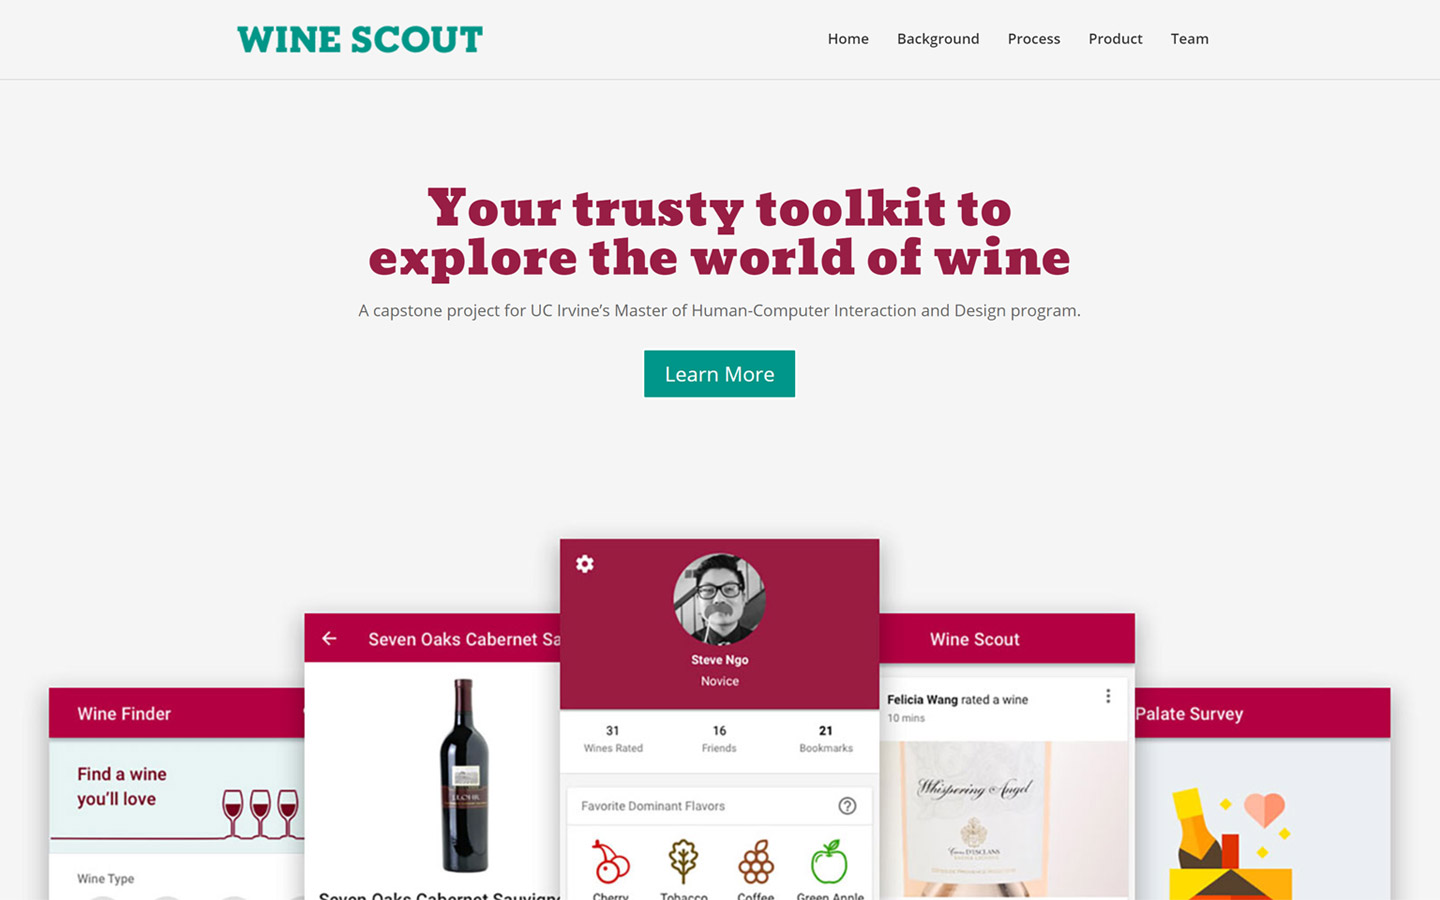 Wine Scout